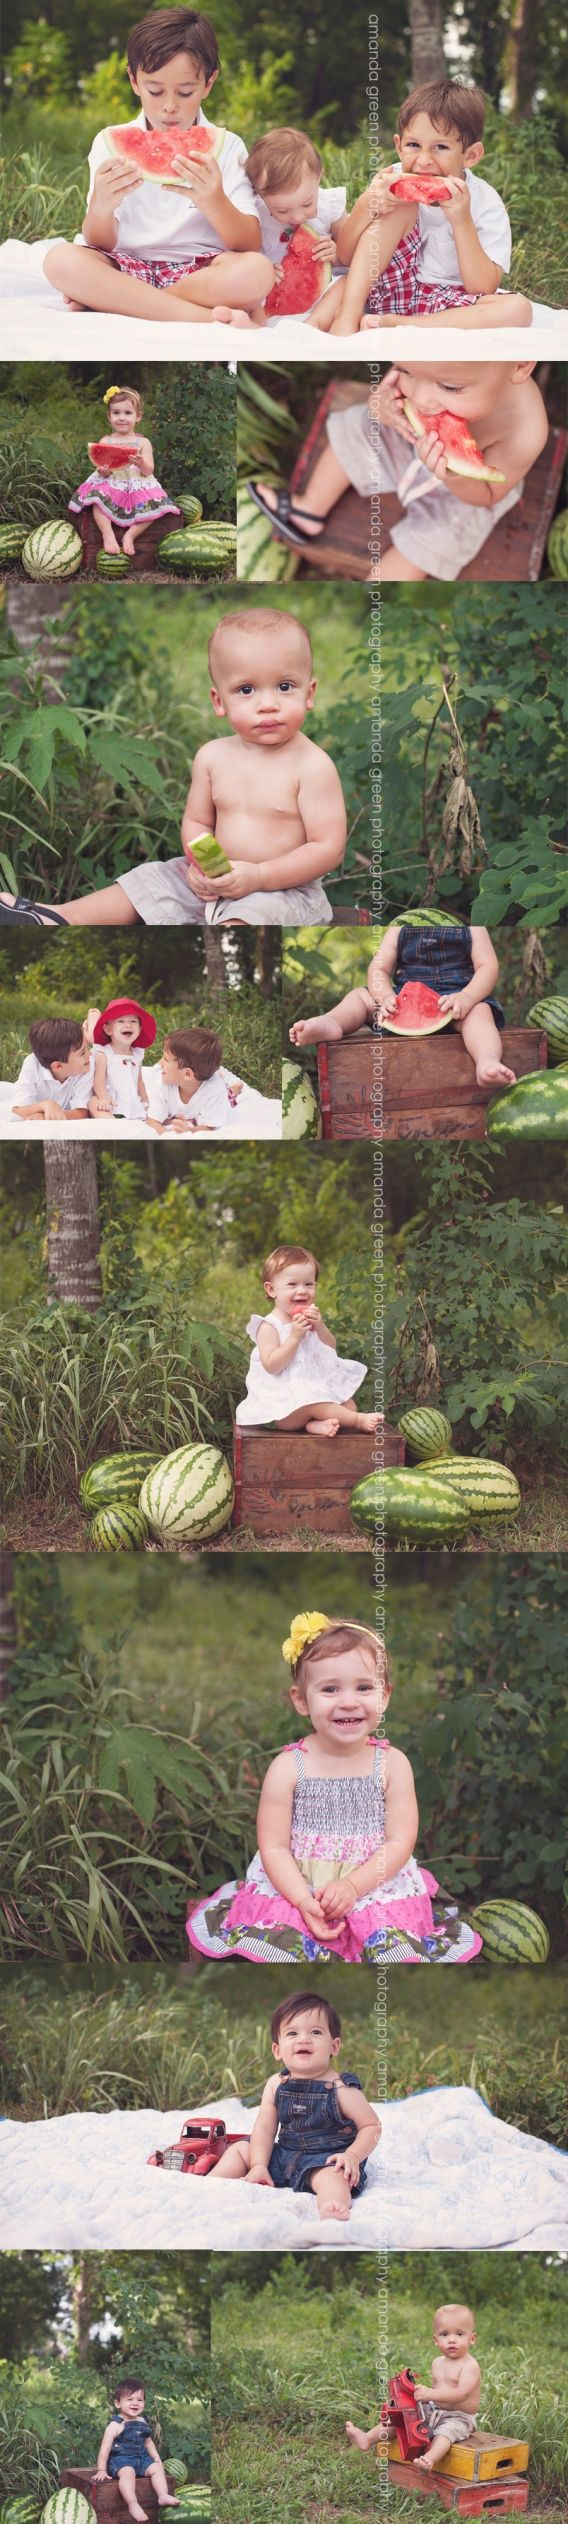 wa-ter-MELON minis!! – katy, TX child photographer » amanda green photography blog